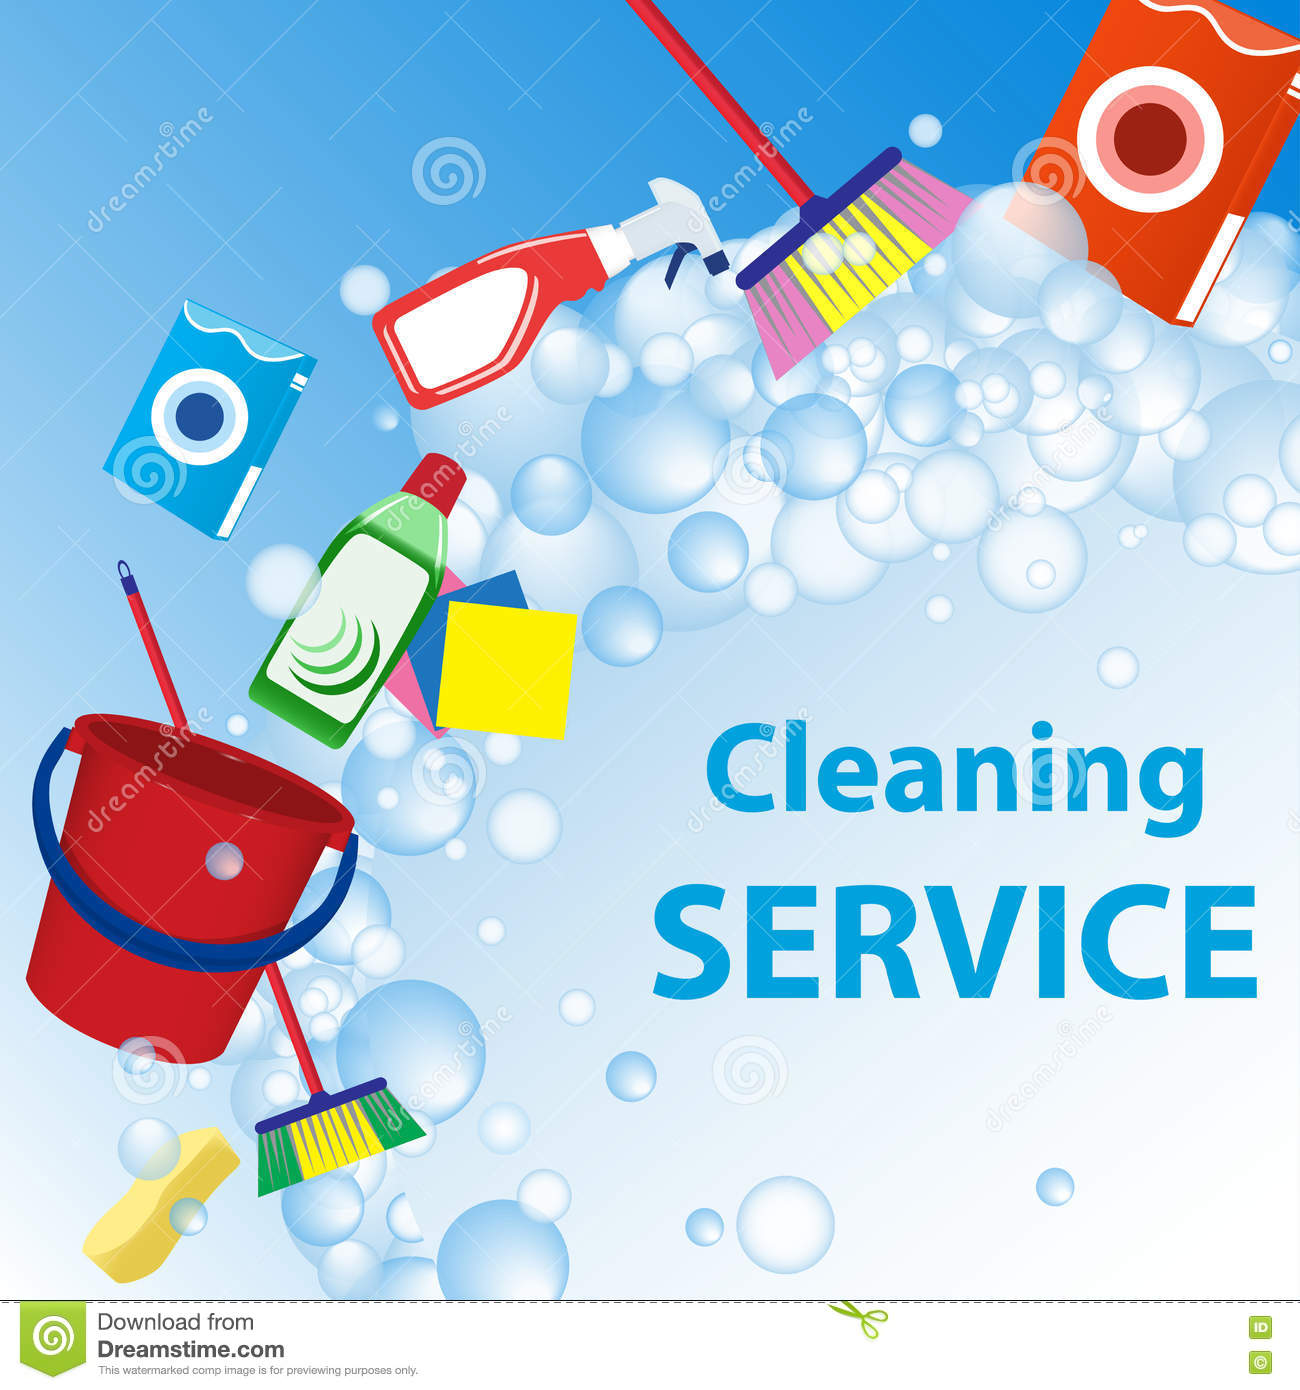 cleaning service illustration poster template for house cleanin